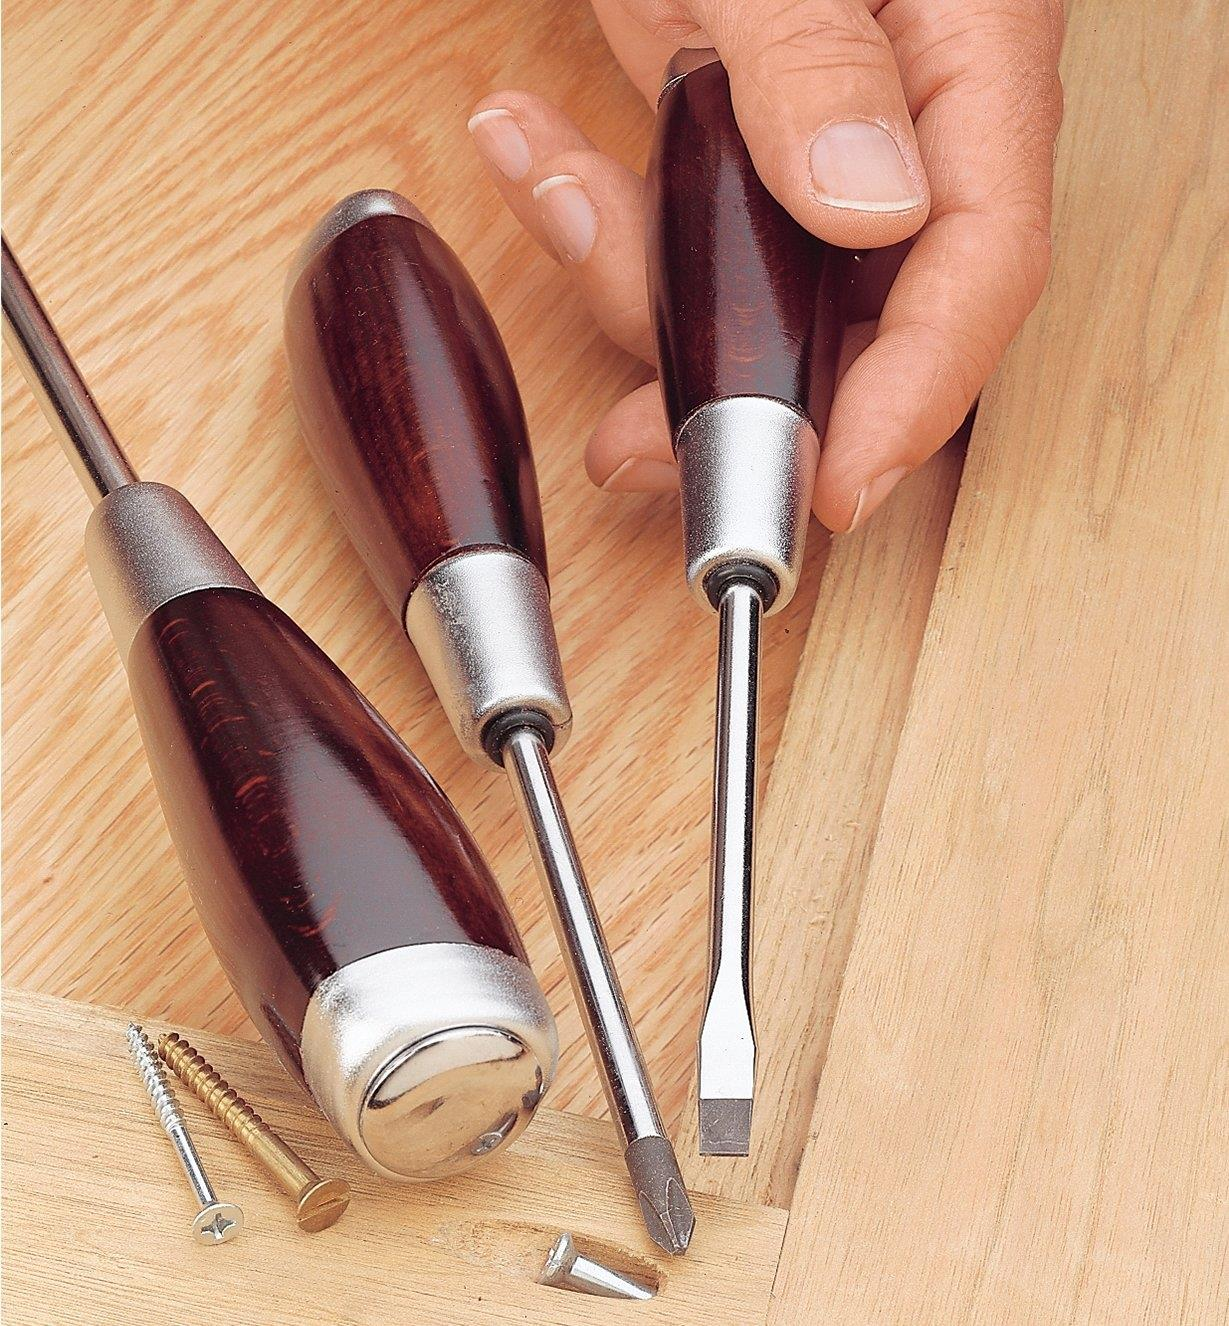 Heavy-Duty Screwdrivers